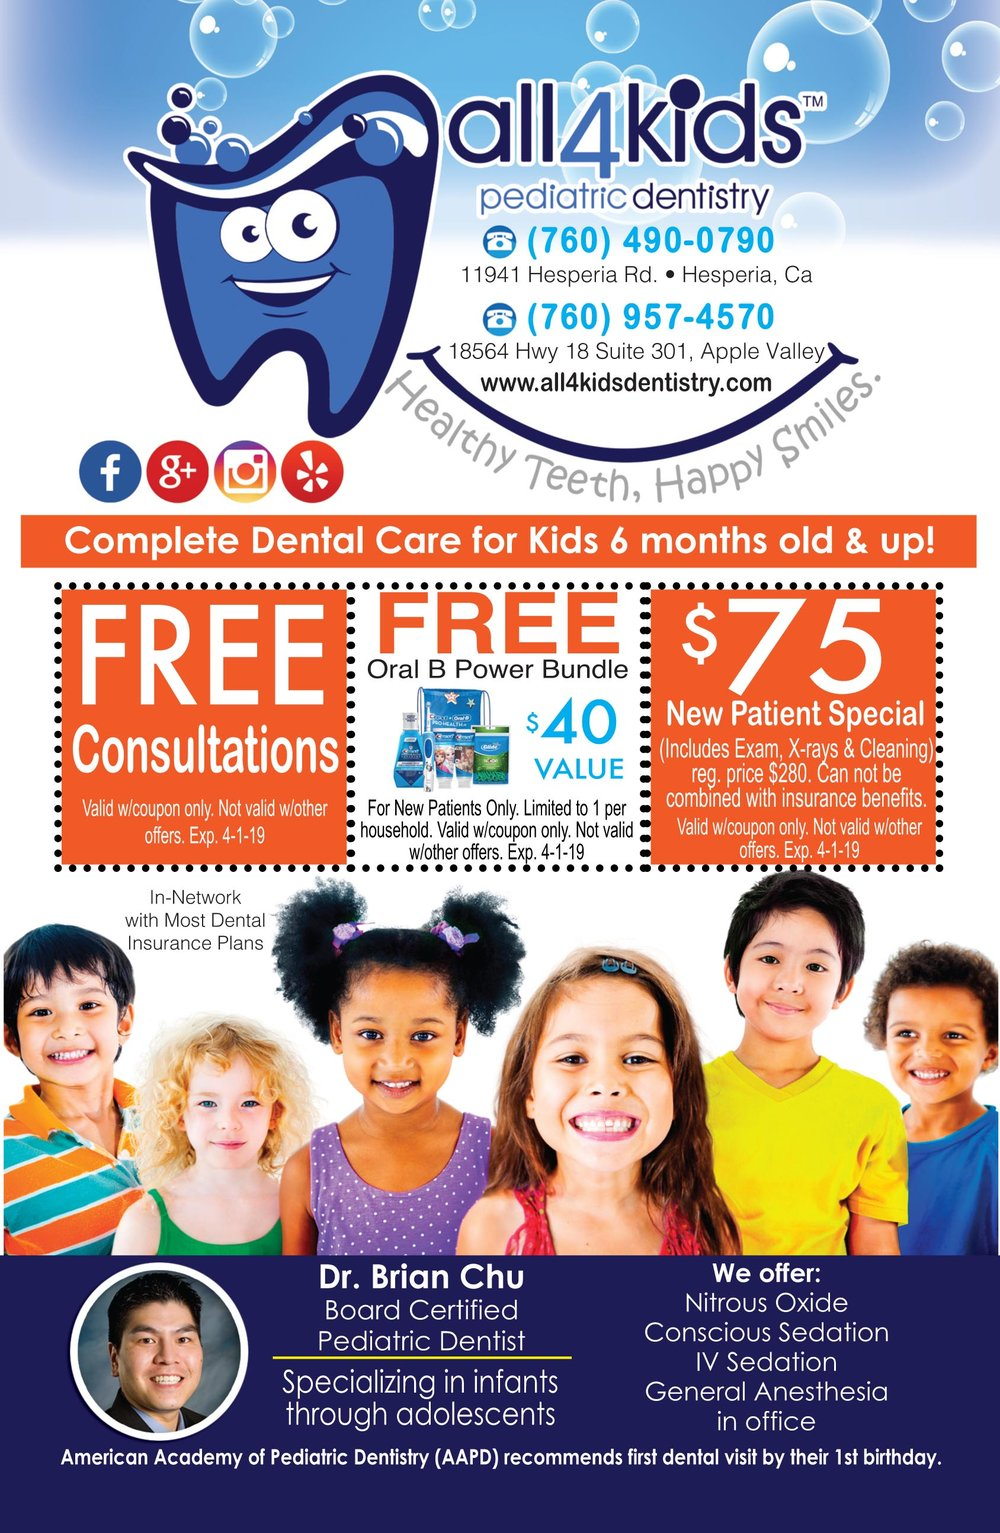 All4Kids Pediatric Dentistry.jpg